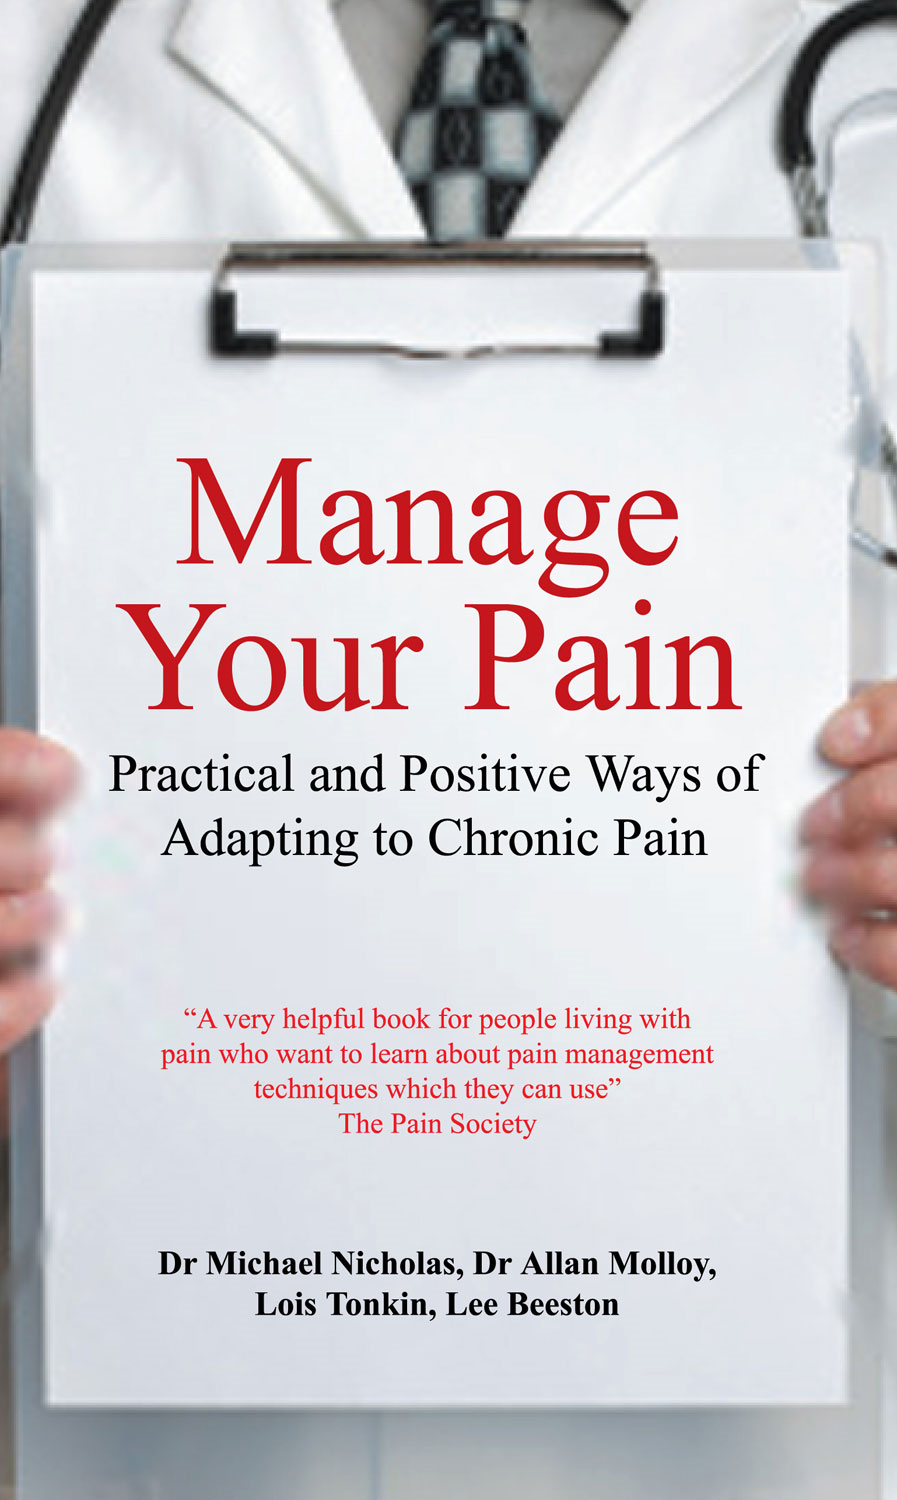 Manage Your Pain: Practical and Positive Ways of Adapting to Chronic Pain